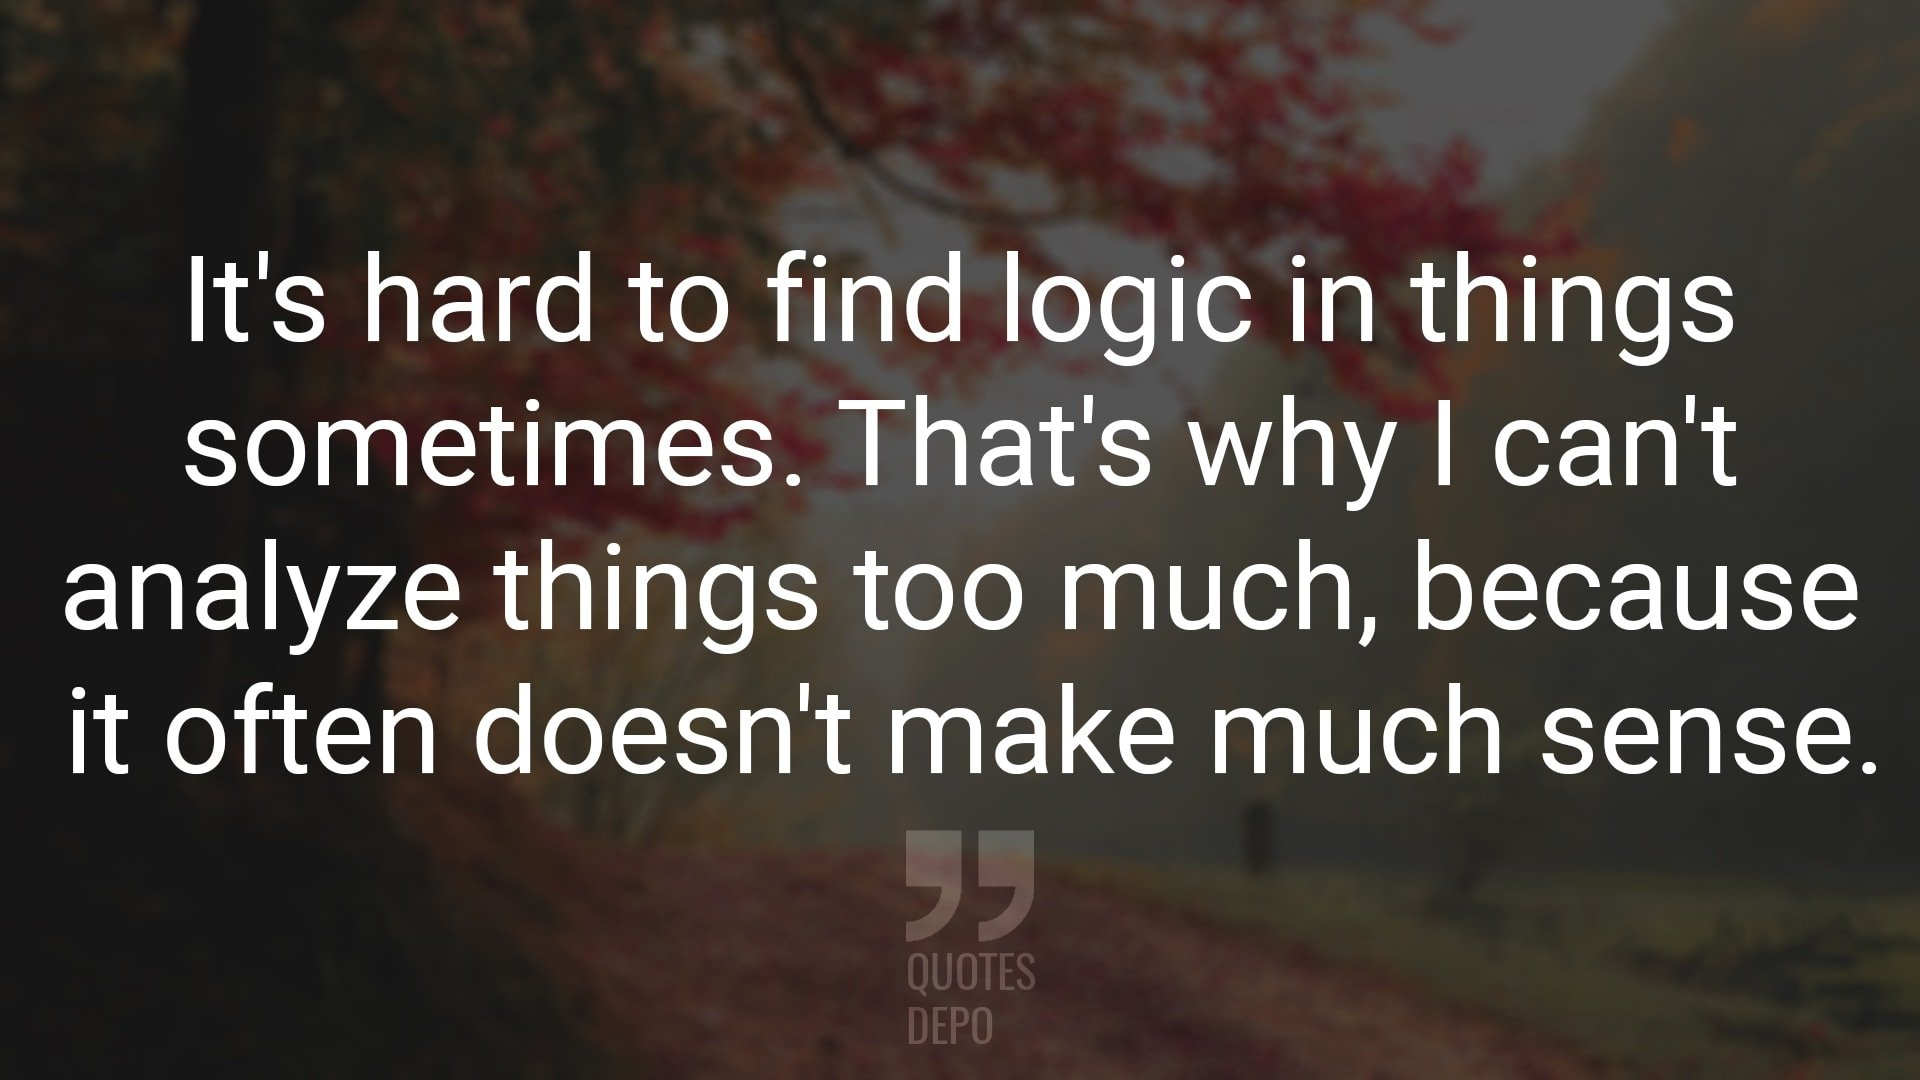 It's Hard to Find Logic in Things